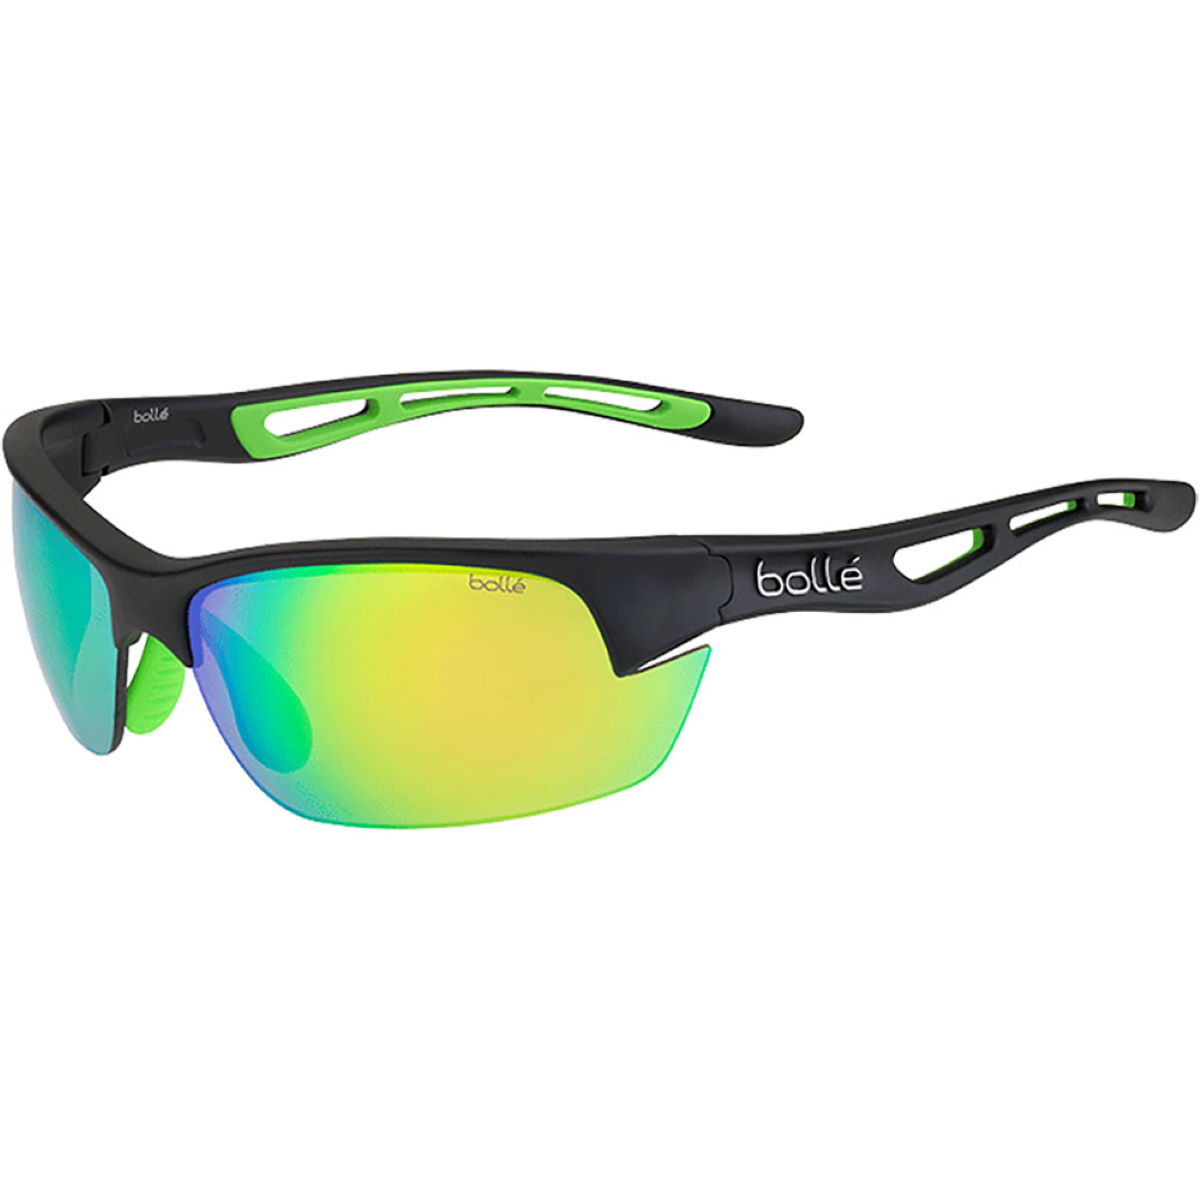 Bolle Bolt S Black - Occhiali da sole